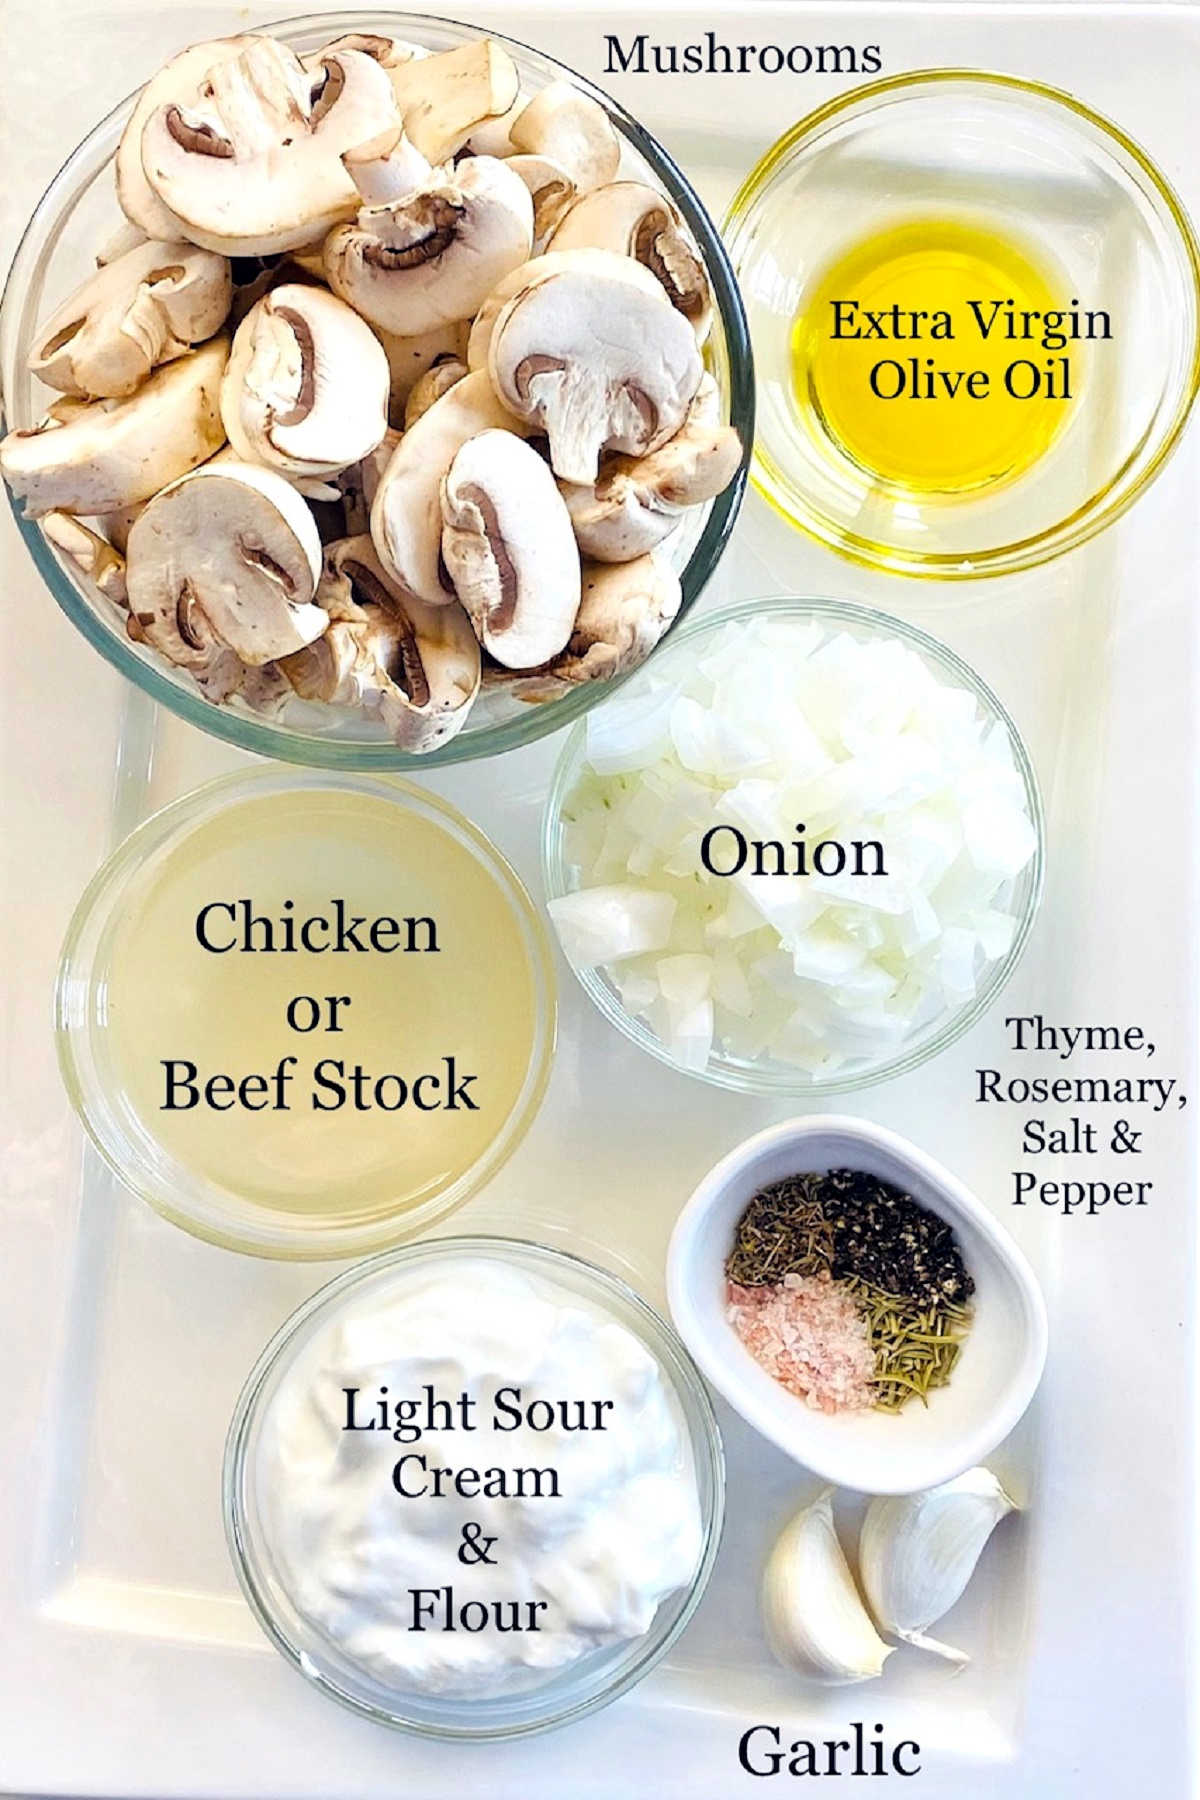 Labeled photo of individual ingredients to make healthy mushroom soup